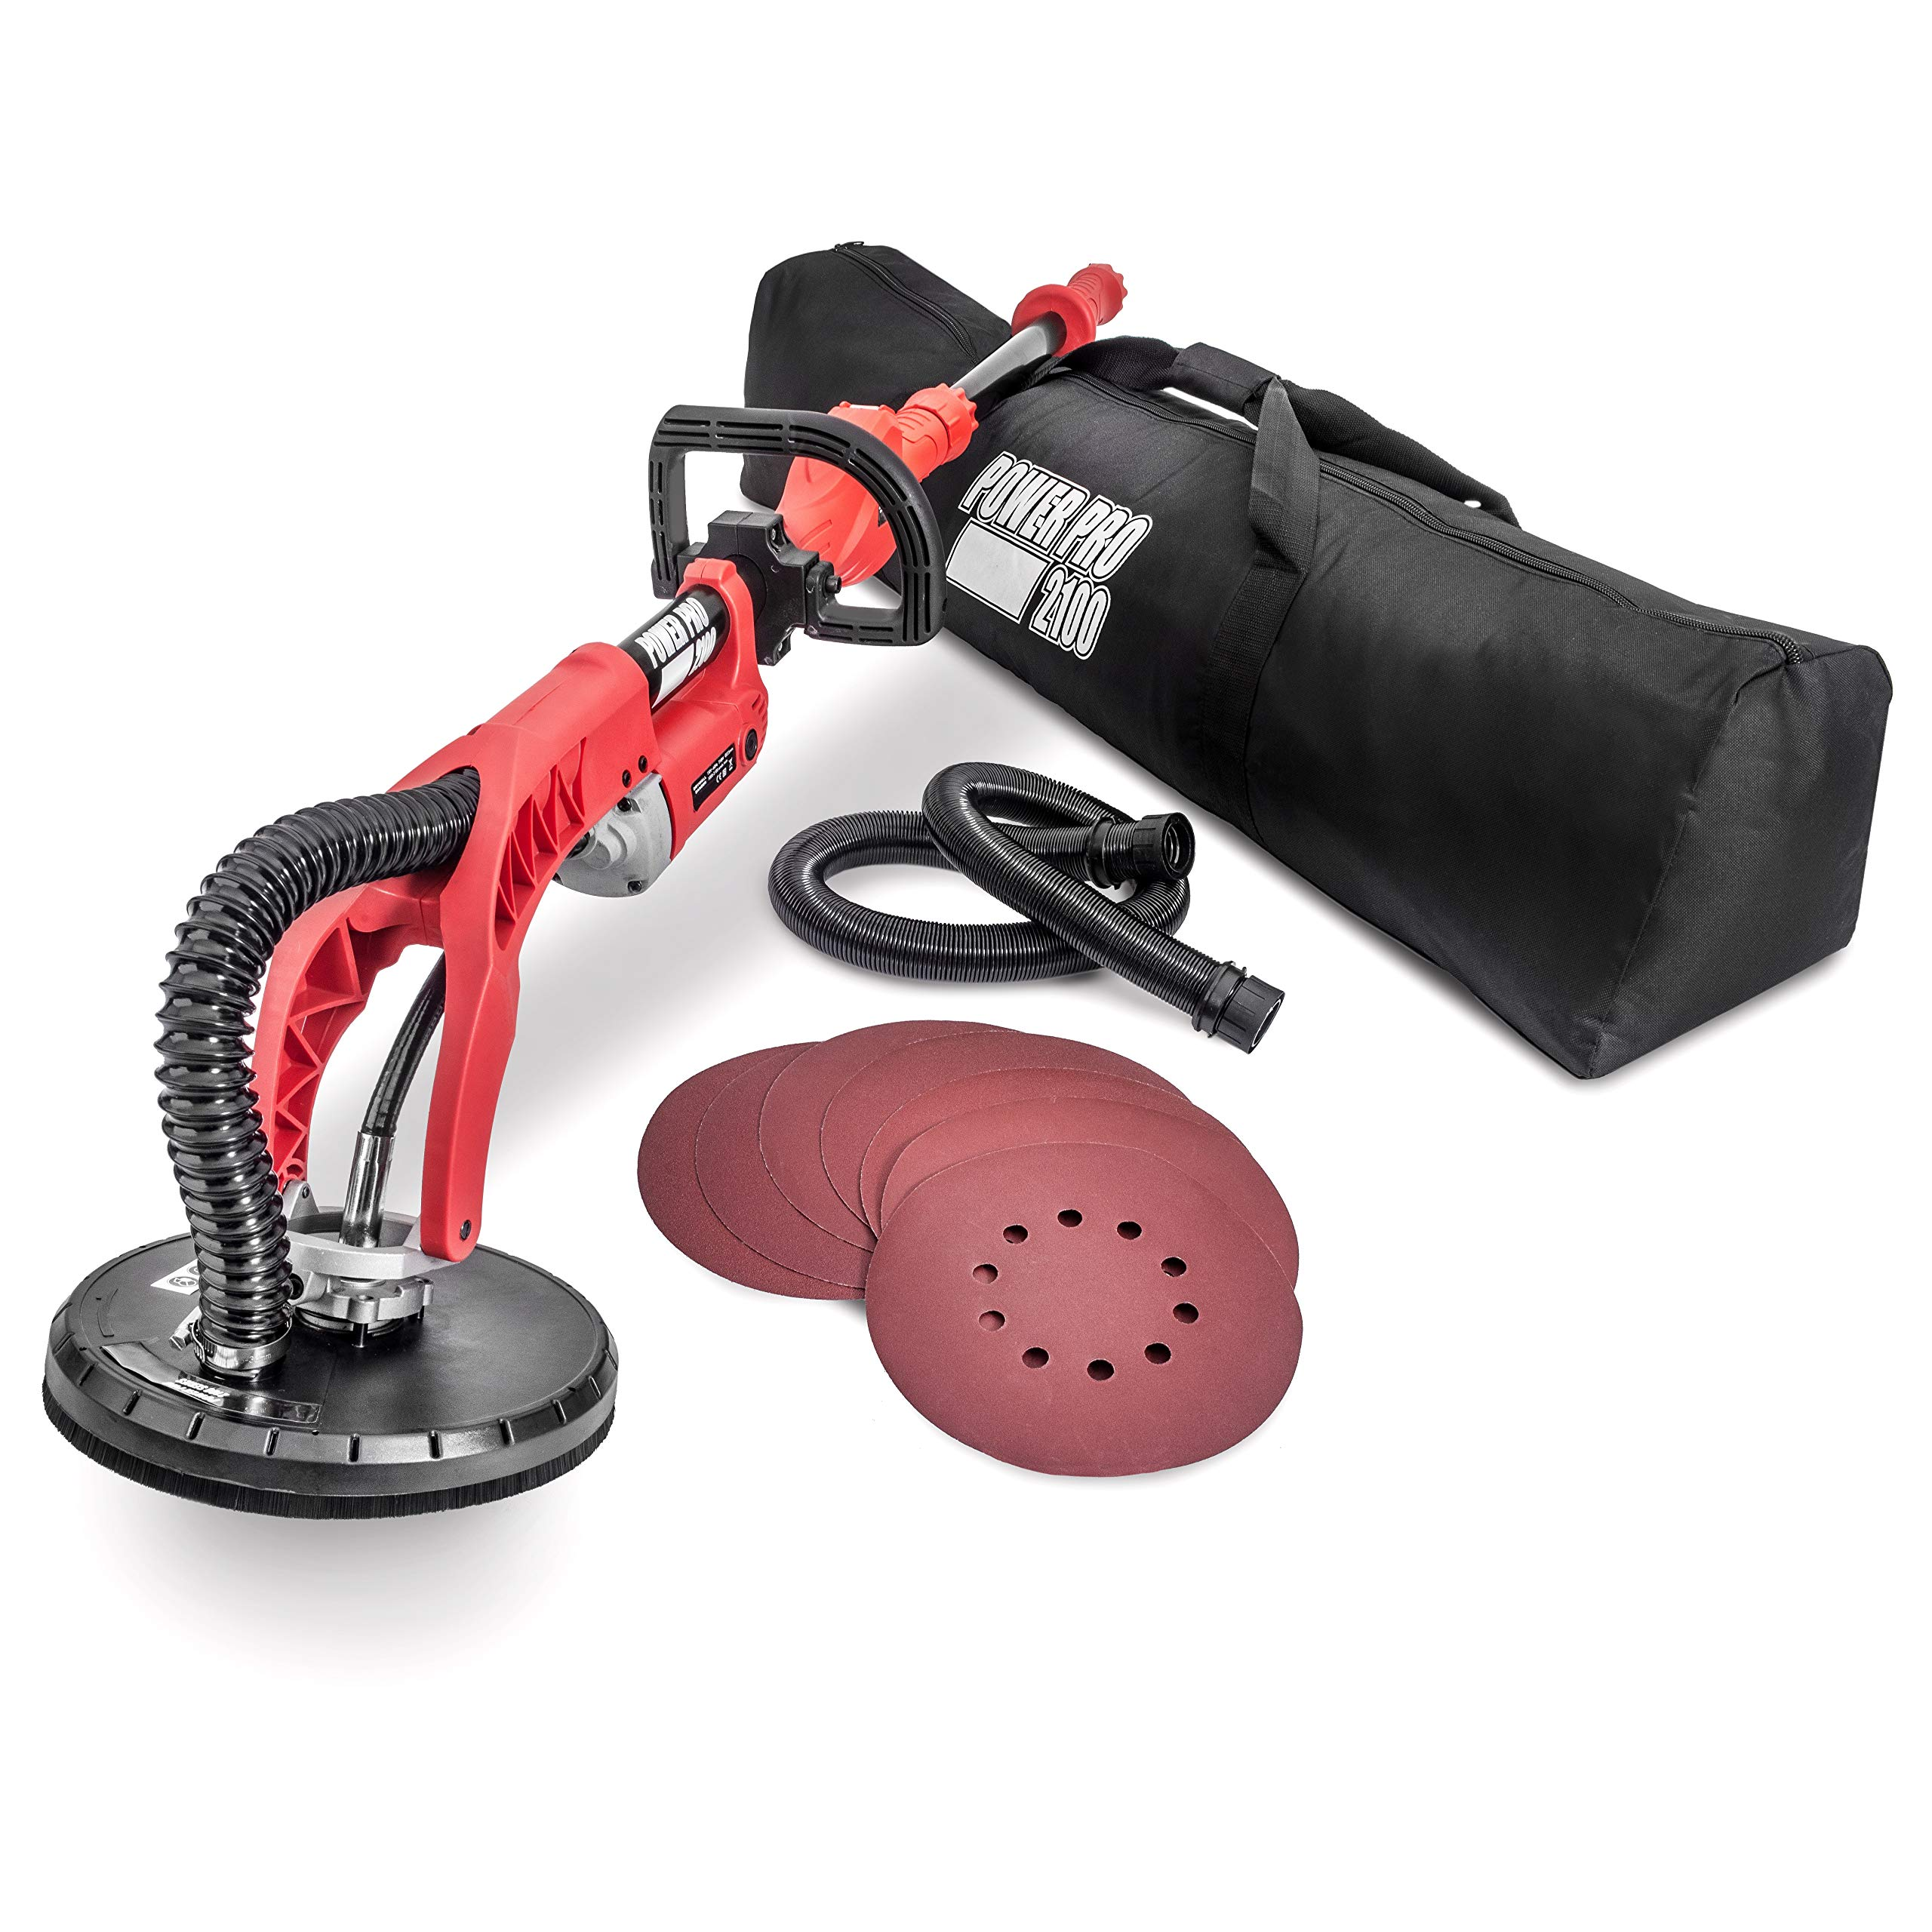 POWER-PRO 2100 Electric Drywall Sander - Variable Speed 1000-2100rpm, 710 Watts, Extendable Handle, Storage Bag, Sanding Discs Included by Power Pro 2100